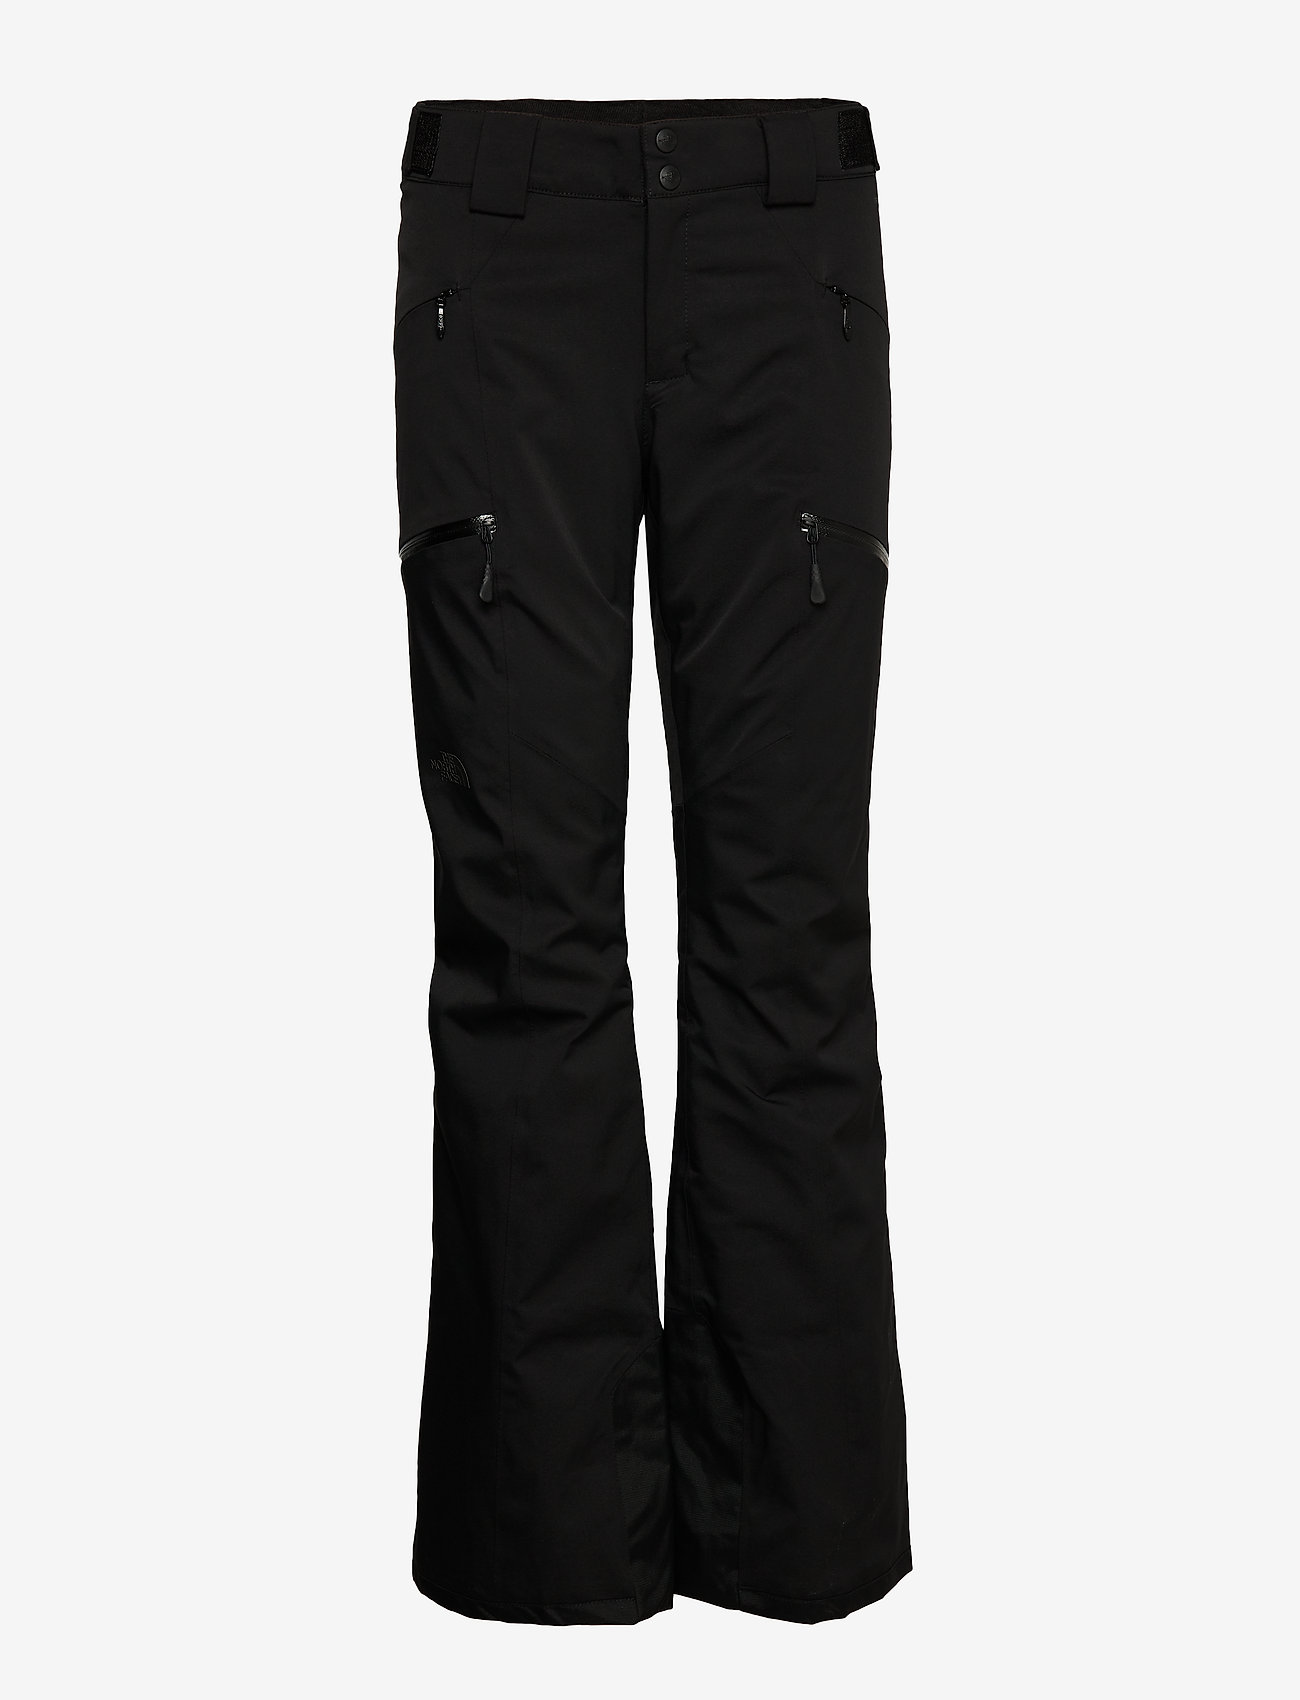 The North Face - W LENADO PANT FIERY RED - insulated pants - tnf black - 0